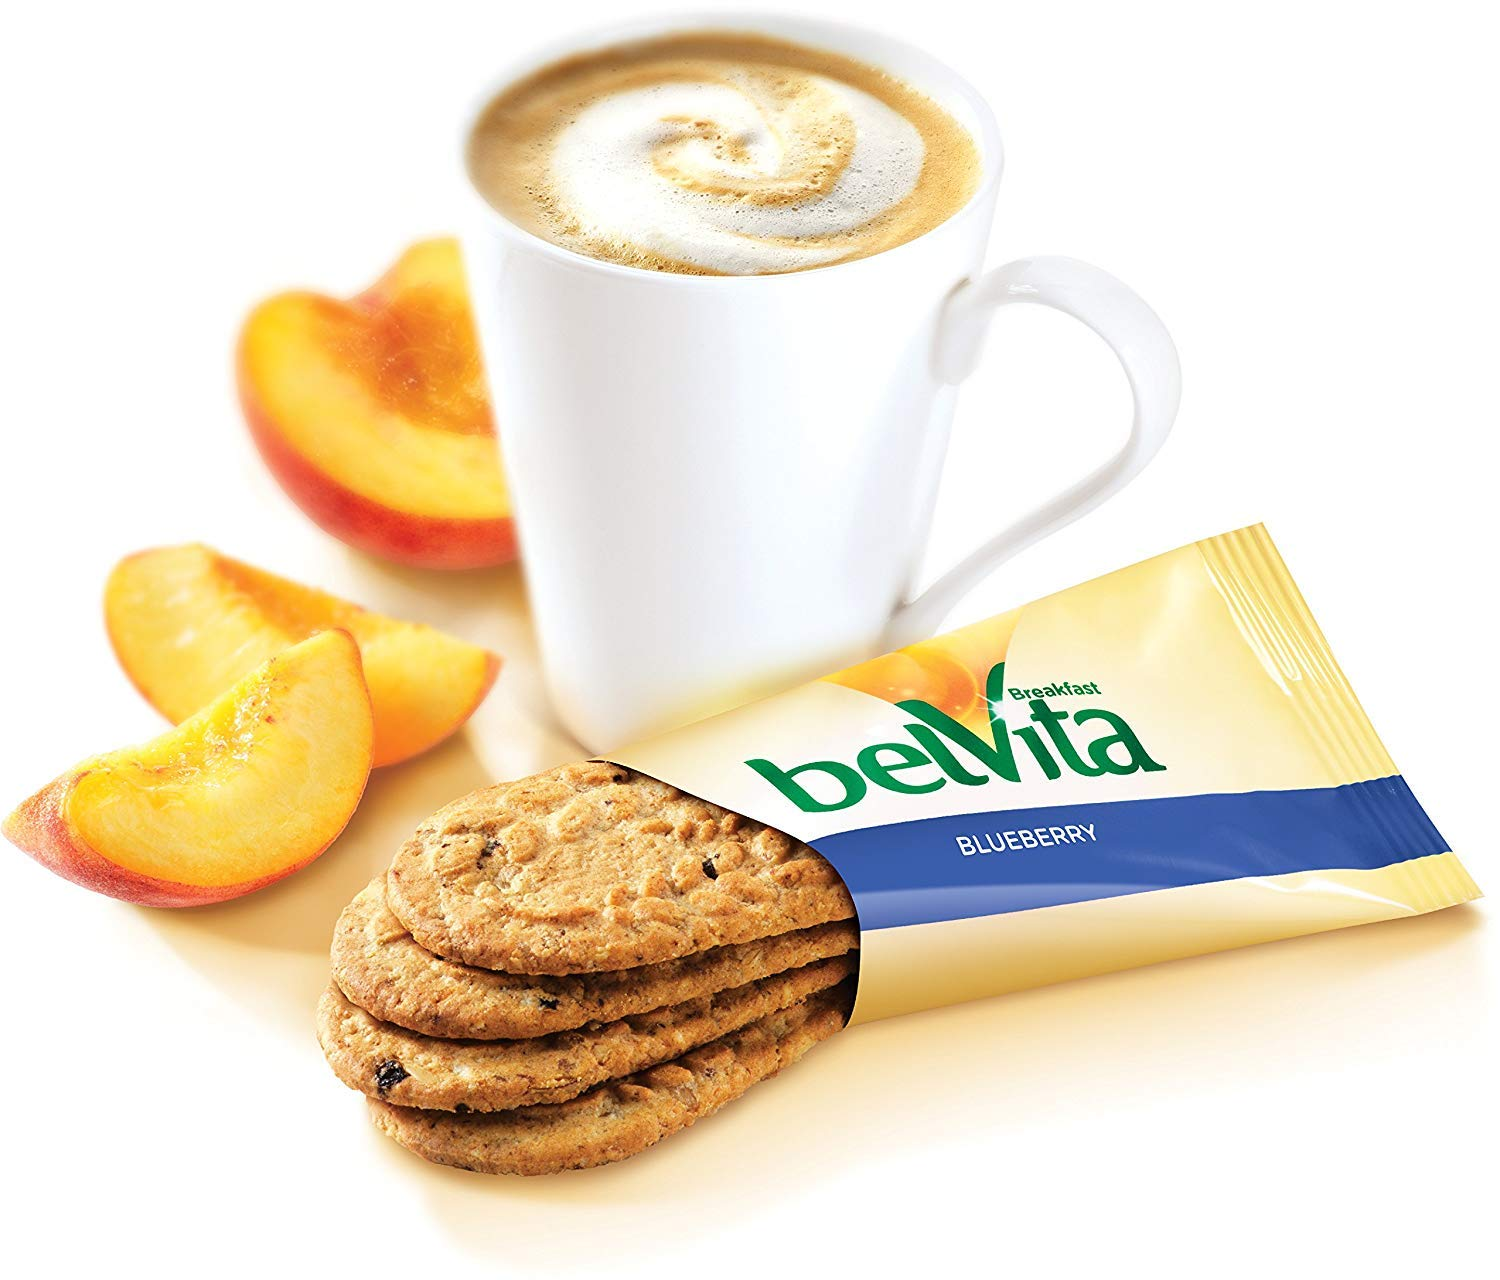 Blueberry Breakfast Biscuits, 5 Count Box Limited Edition by Belvita (Image #3)